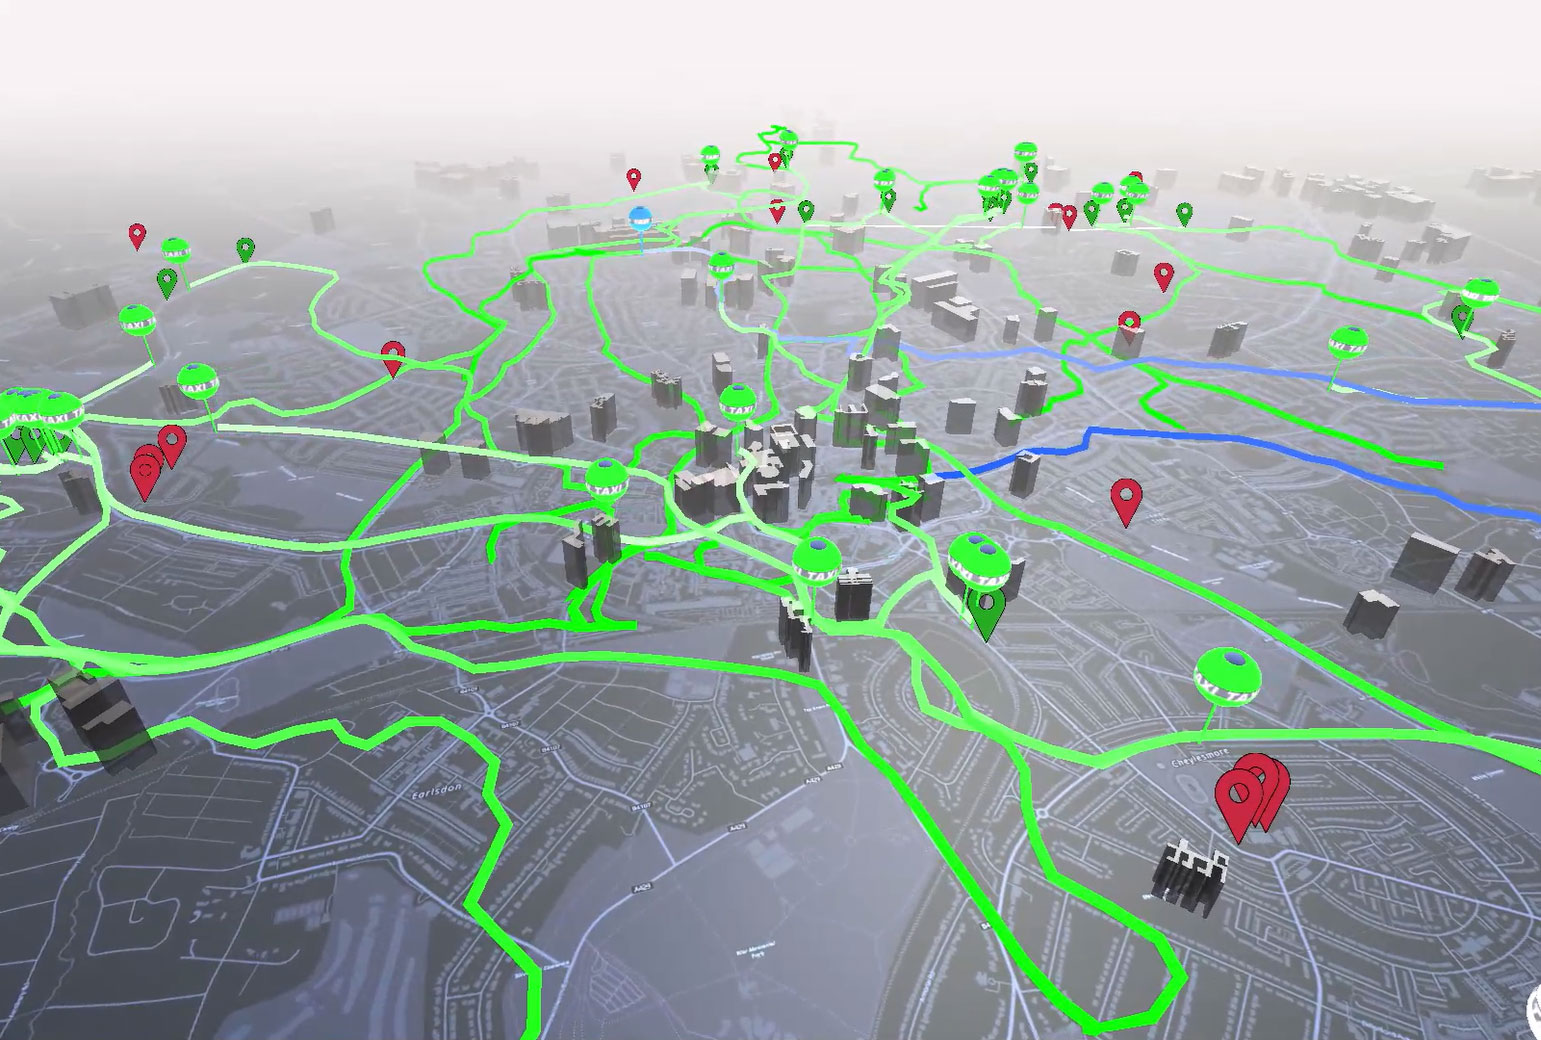 Simulating the city: Transport modelling technology maps the future of urban travel